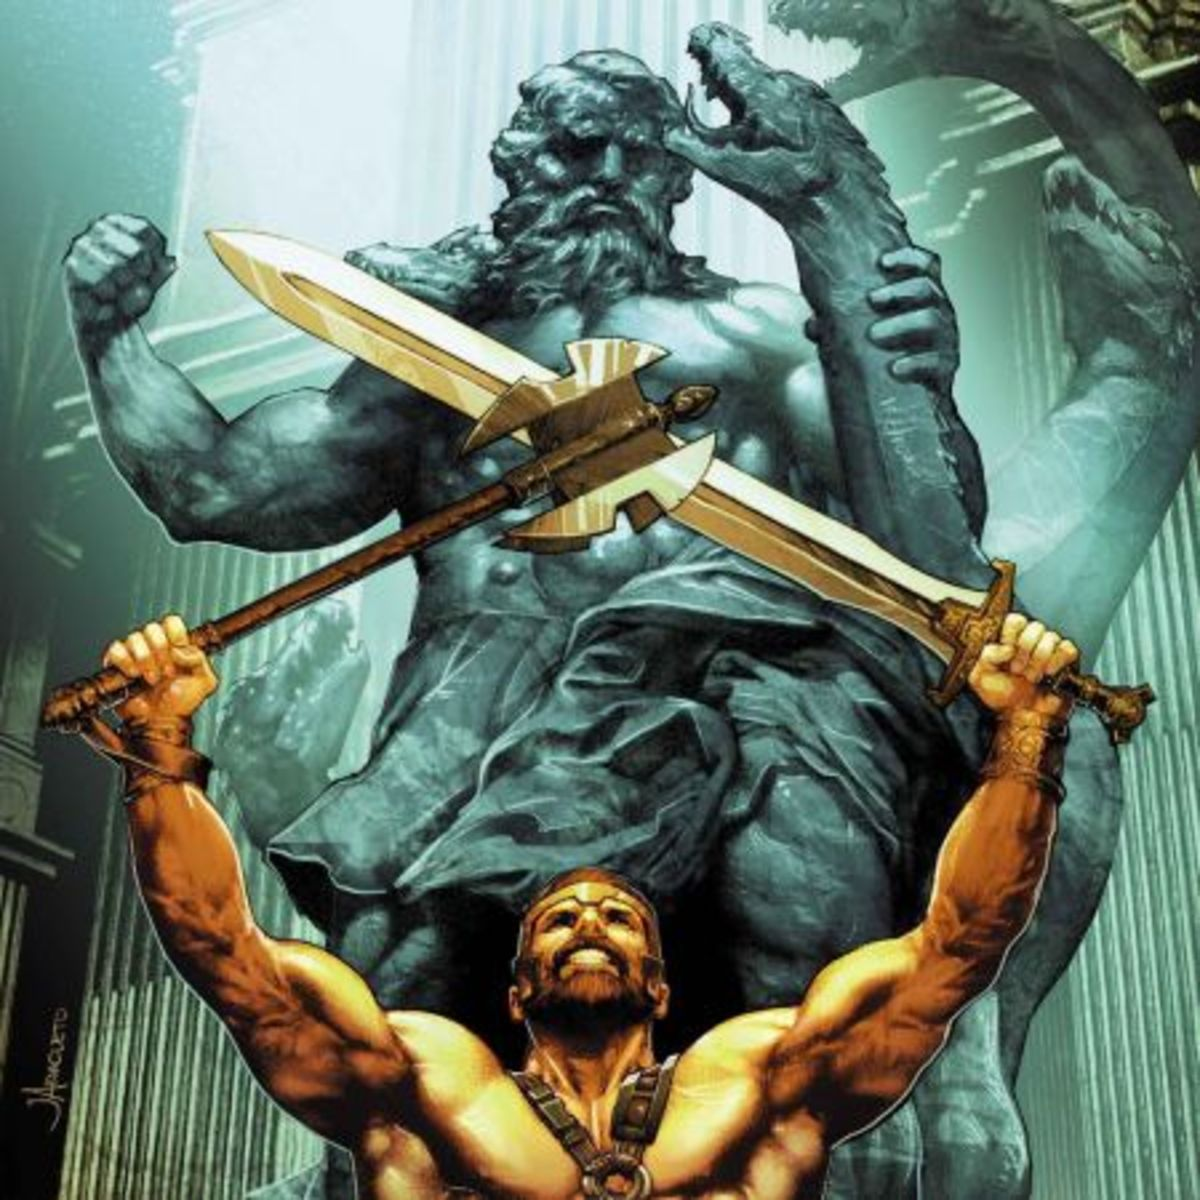 From Marvel Comics series Civil War II: Gods of War. Beowulf, Hercules, Gilgamesh and others.